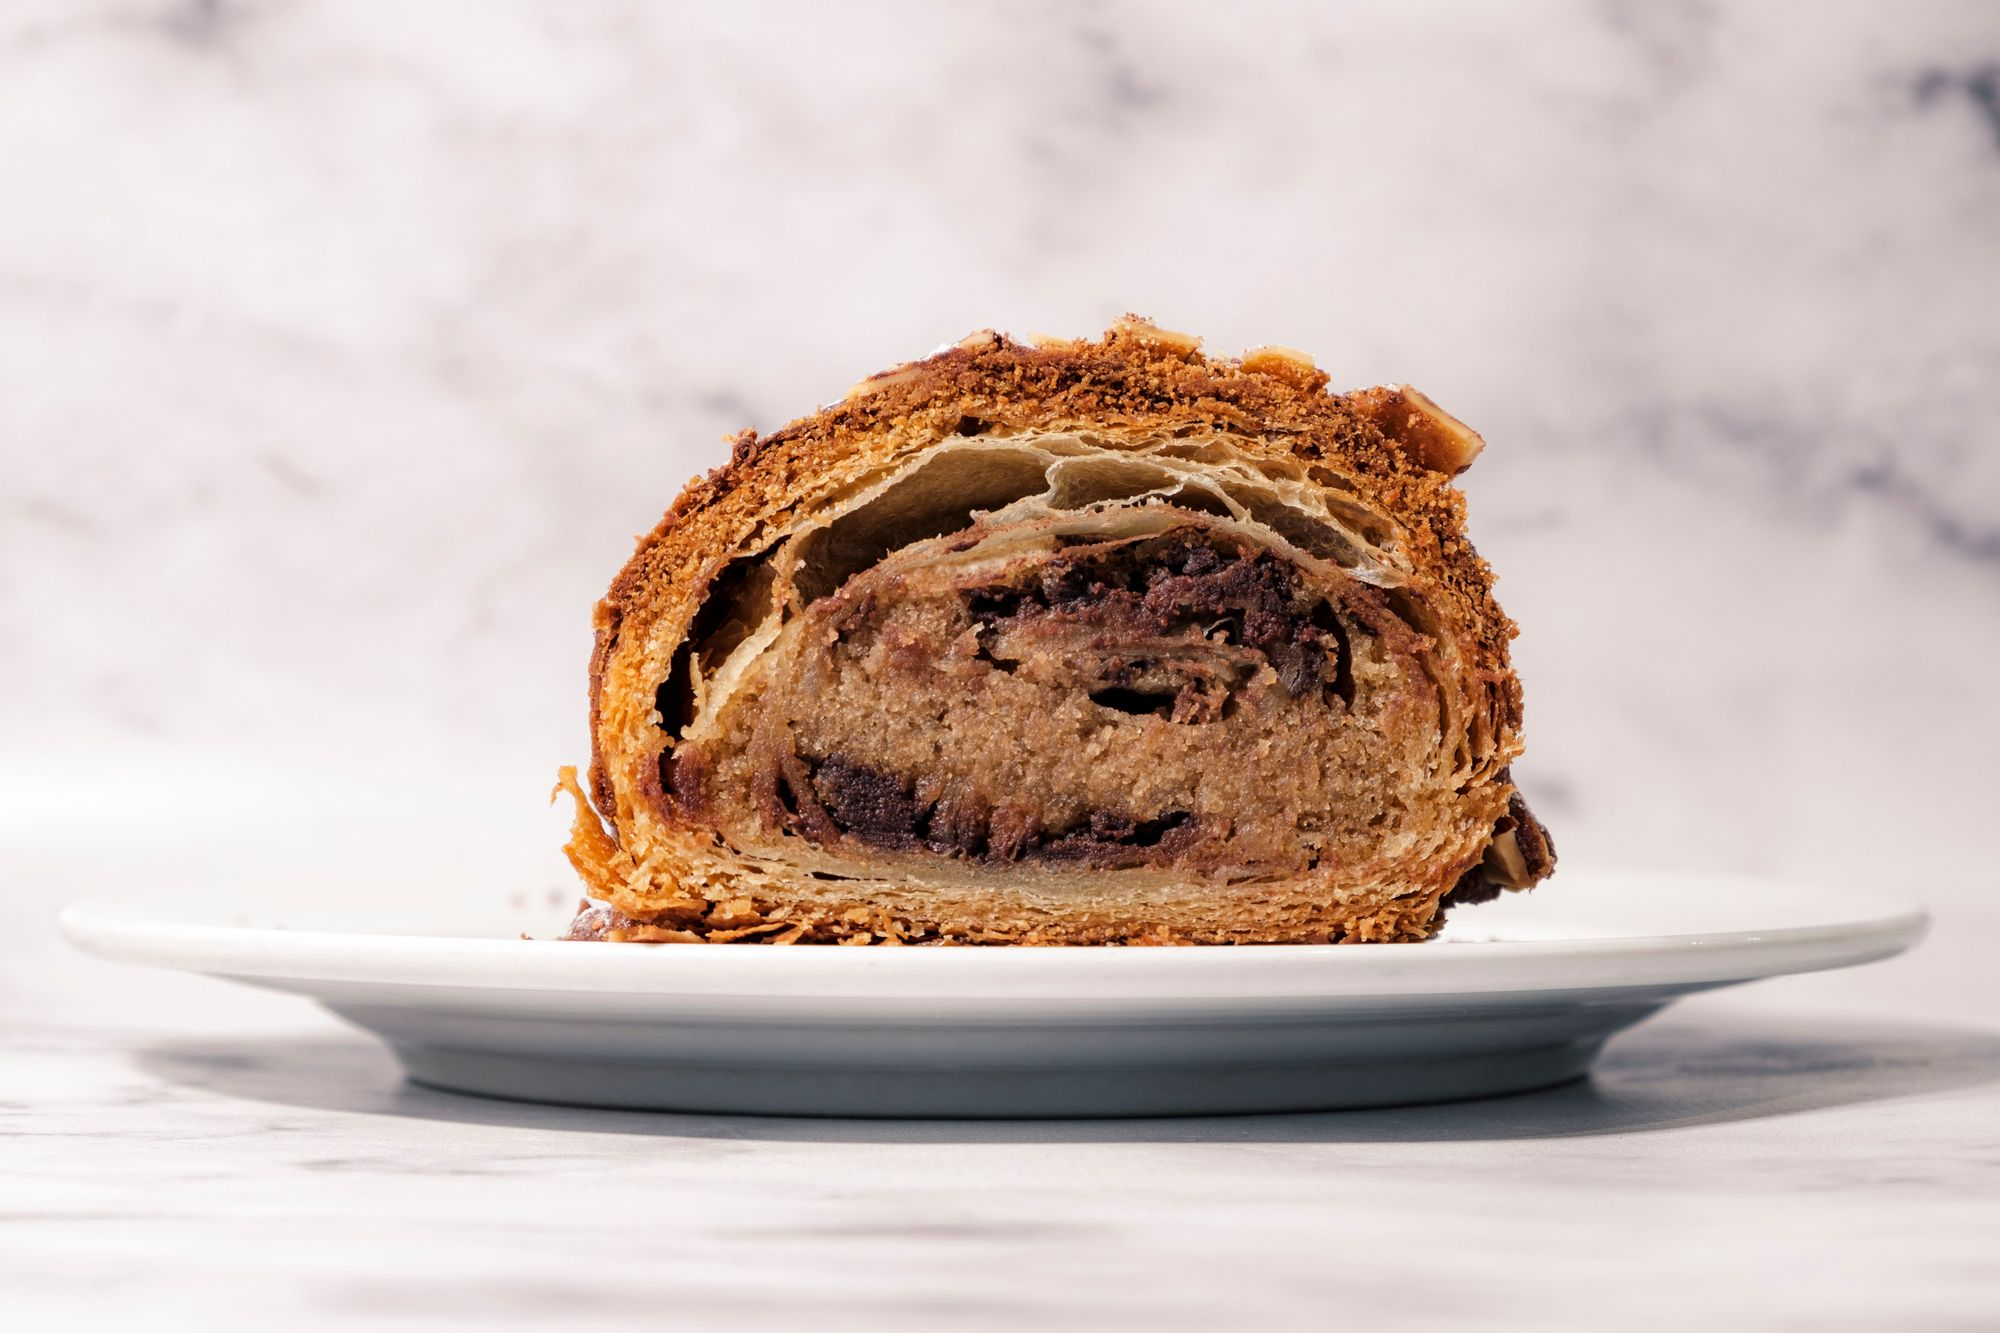 BjornBar Bakery Tiramisu Croissant - Cross Section